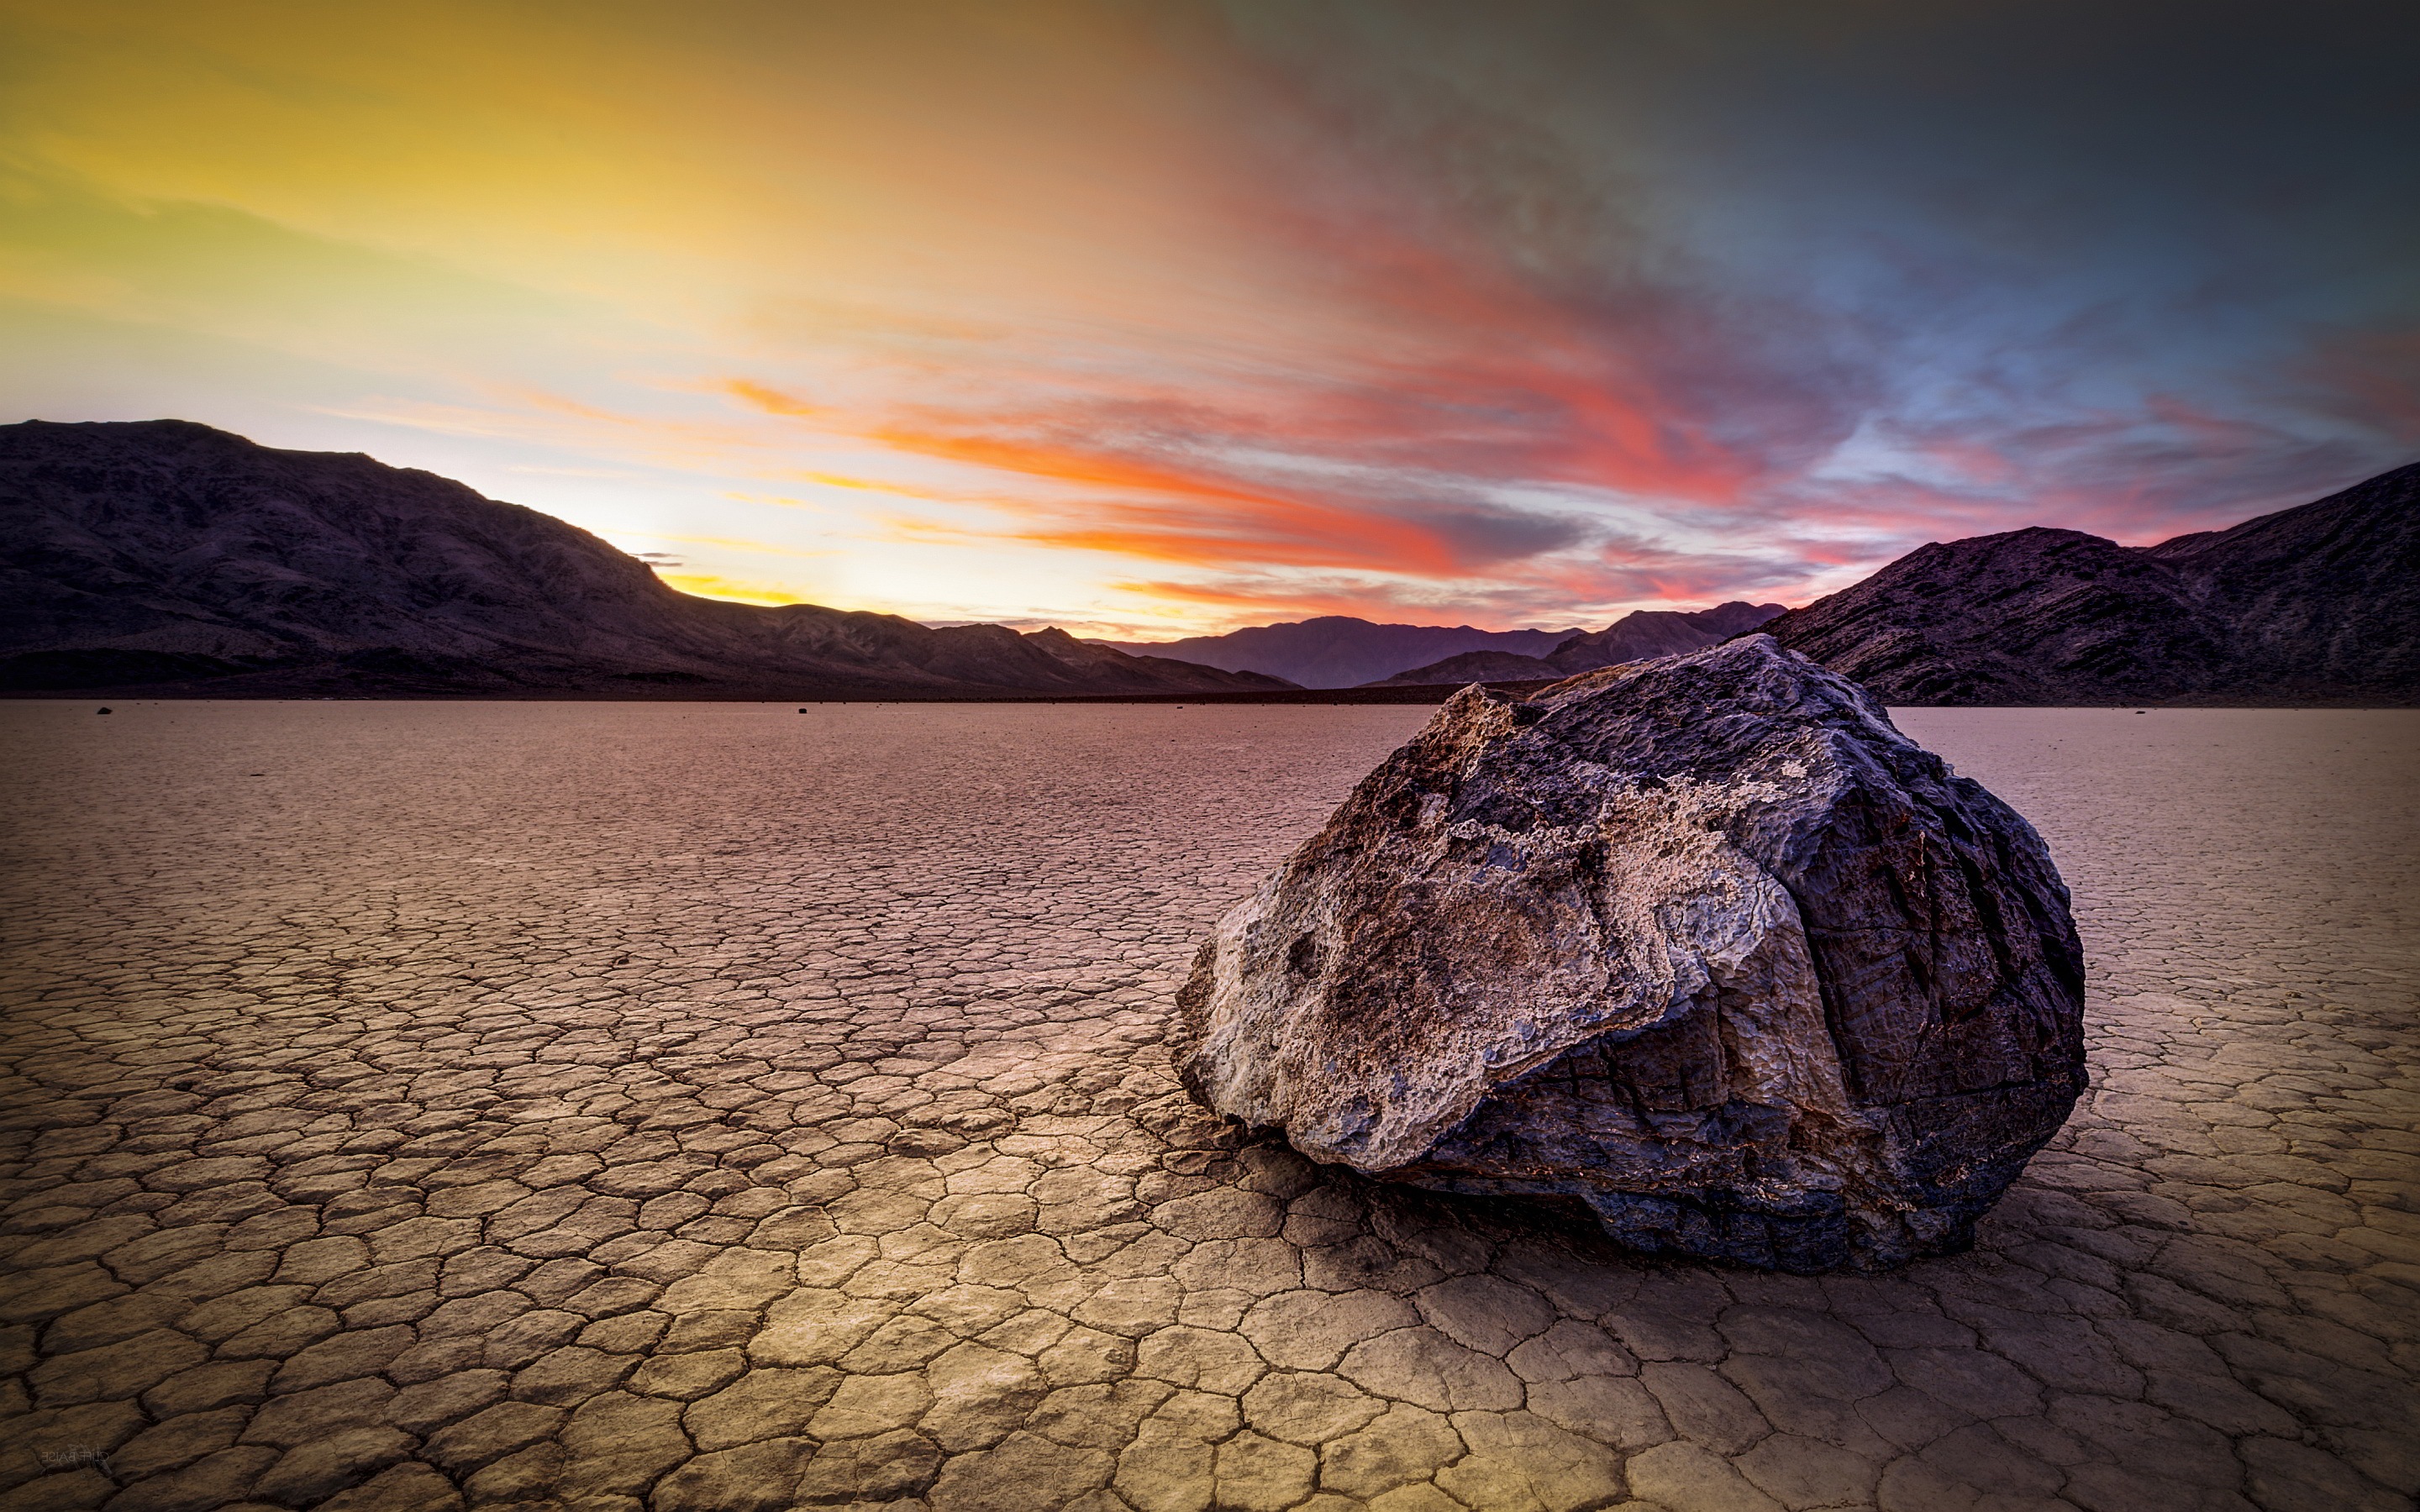 Death Valley Wallpapers High Quality Download 2880x1800